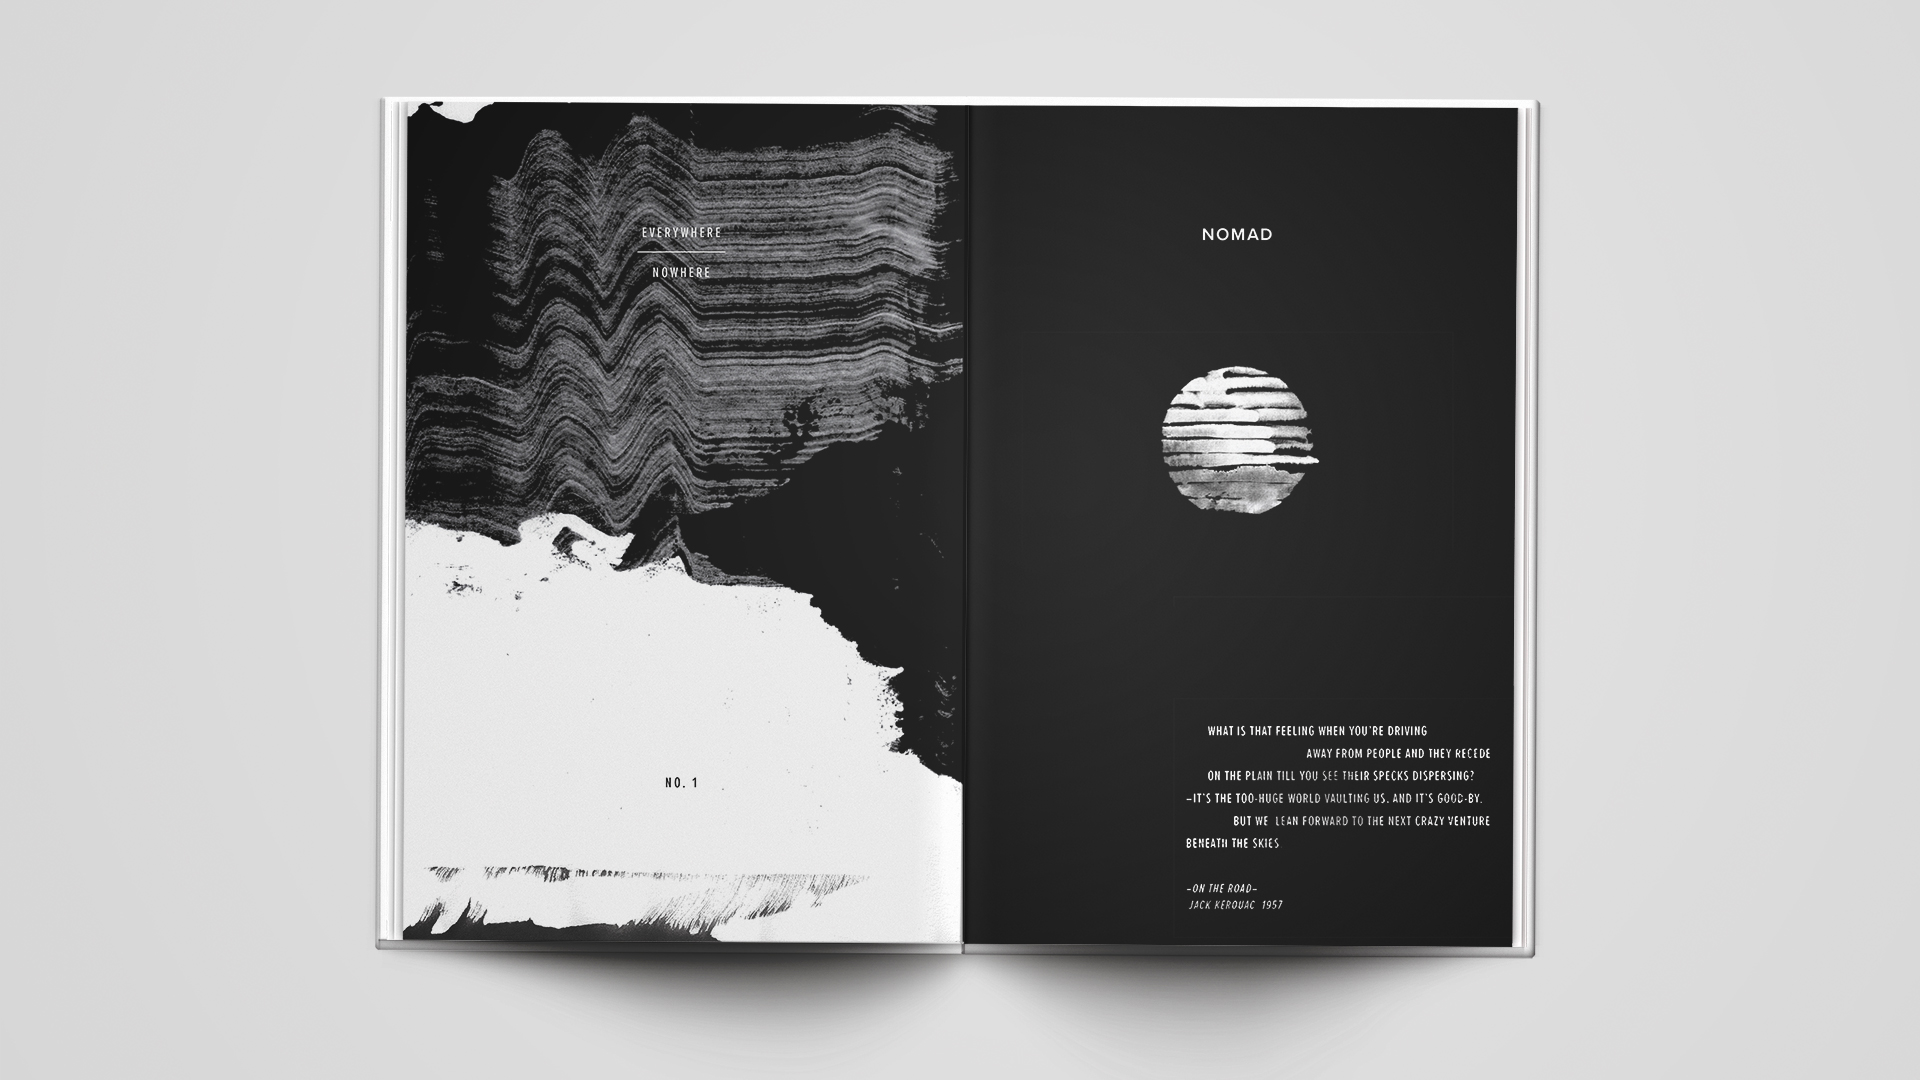 NOMAD_TITLE_PAGE_SPREAD